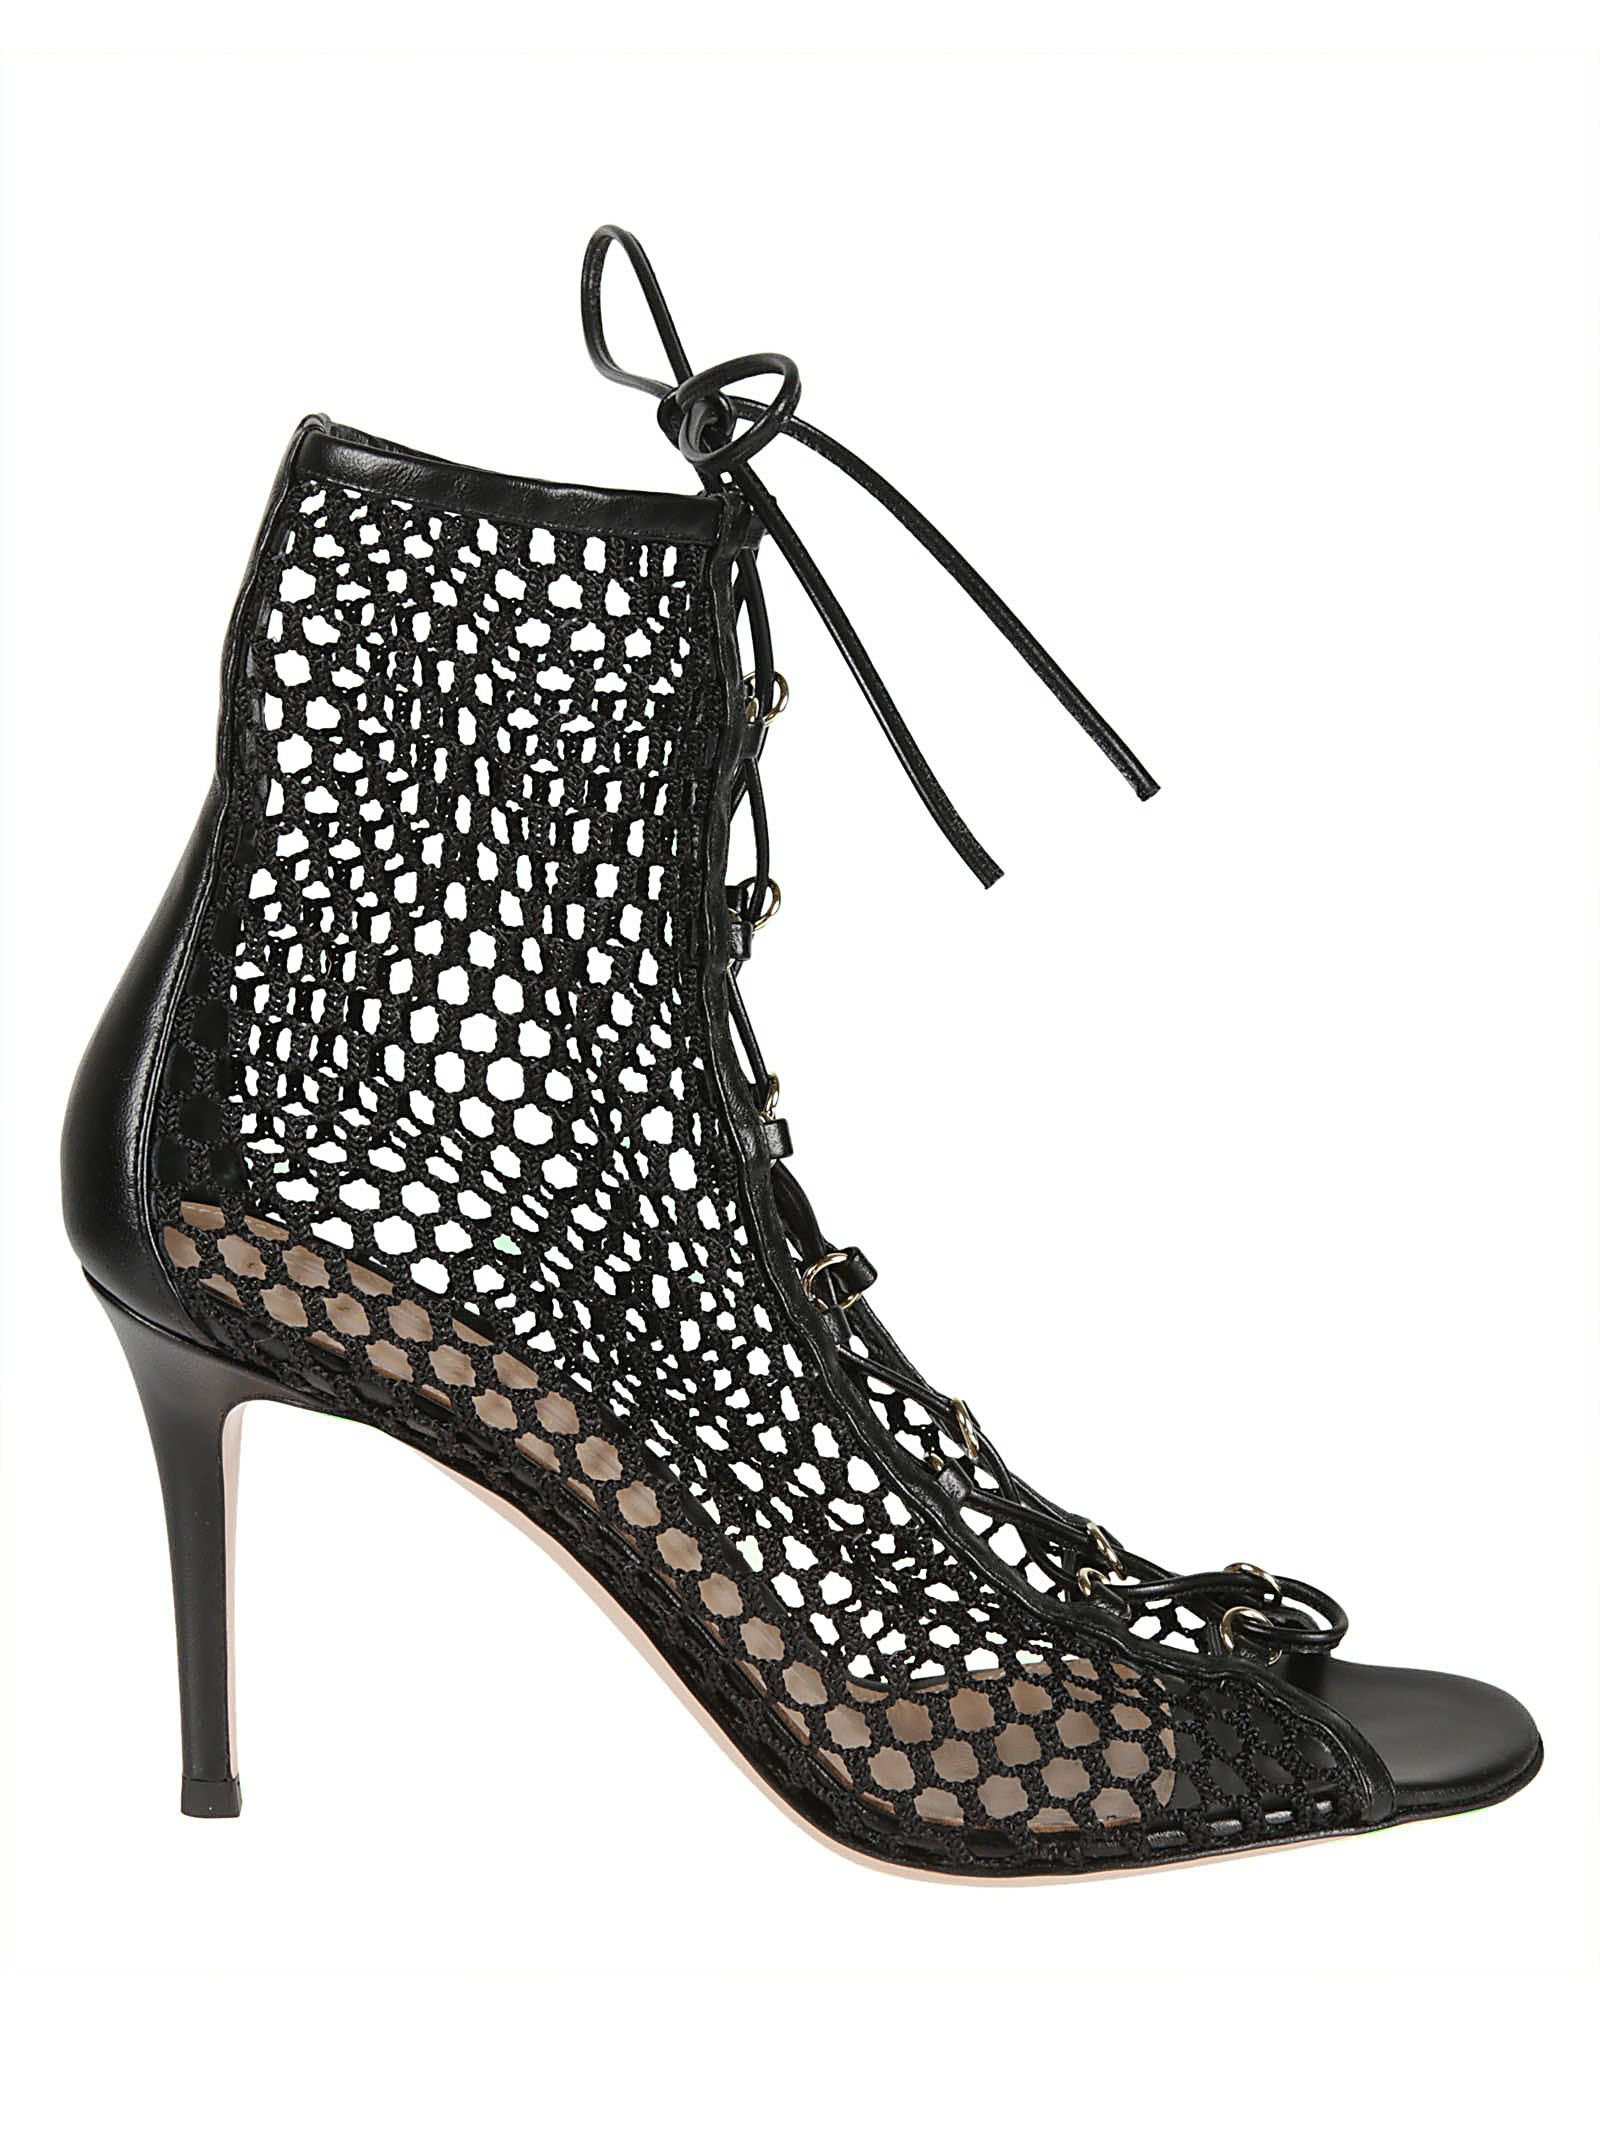 Gianvito Rossi Helene Ankle Boots